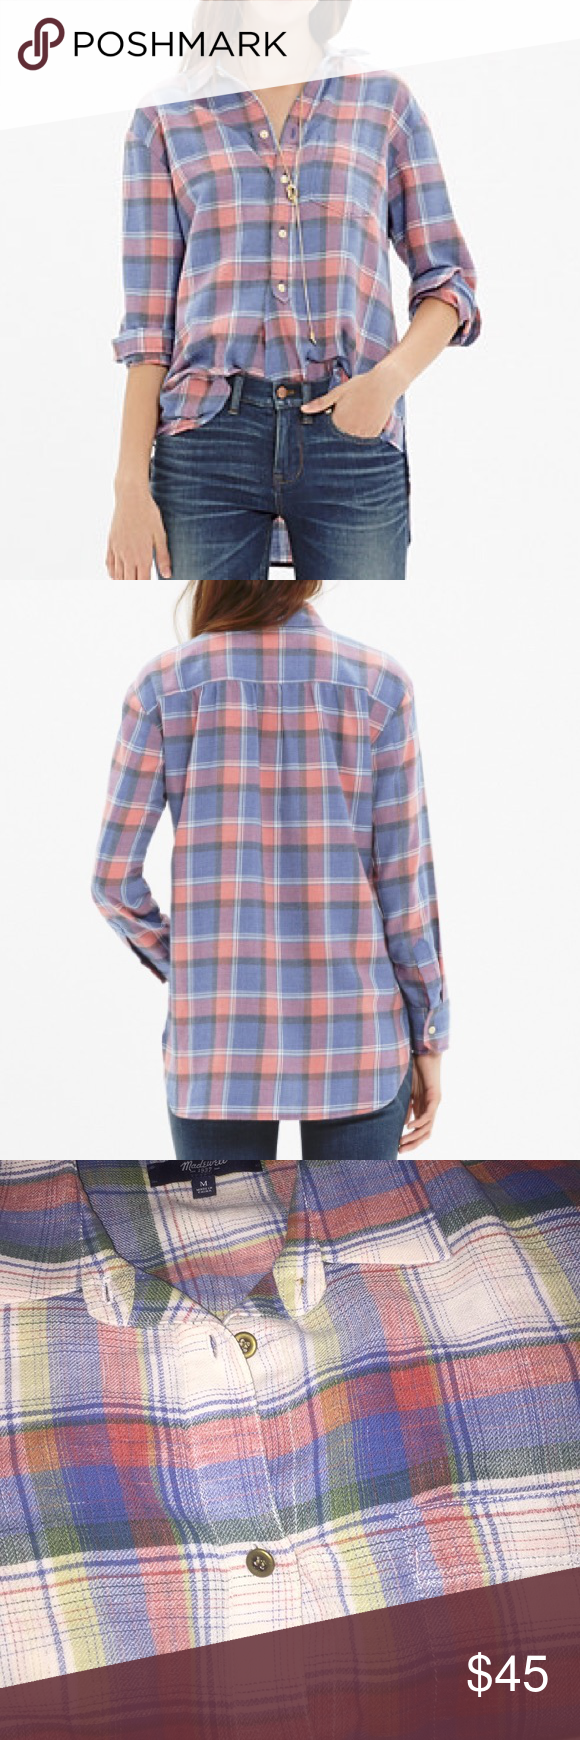 New Madewell Rivet & Thread flannel Harvey shirt This is a new Madewell lightweight flannel shirt. Size medium.  Limited edition, small batch and exclusively ours, Rivet & Thread designs are future keepsakes crafted from top-of-the-line fabrics. Take this totally essential button-down, for example: It features superspecial Japanese flannel in an easy-on-the-eyes blue and pink plaid.   •True to size. •Poly/cotton. •Machine wash. Madewell Tops Tees - Long Sleeve